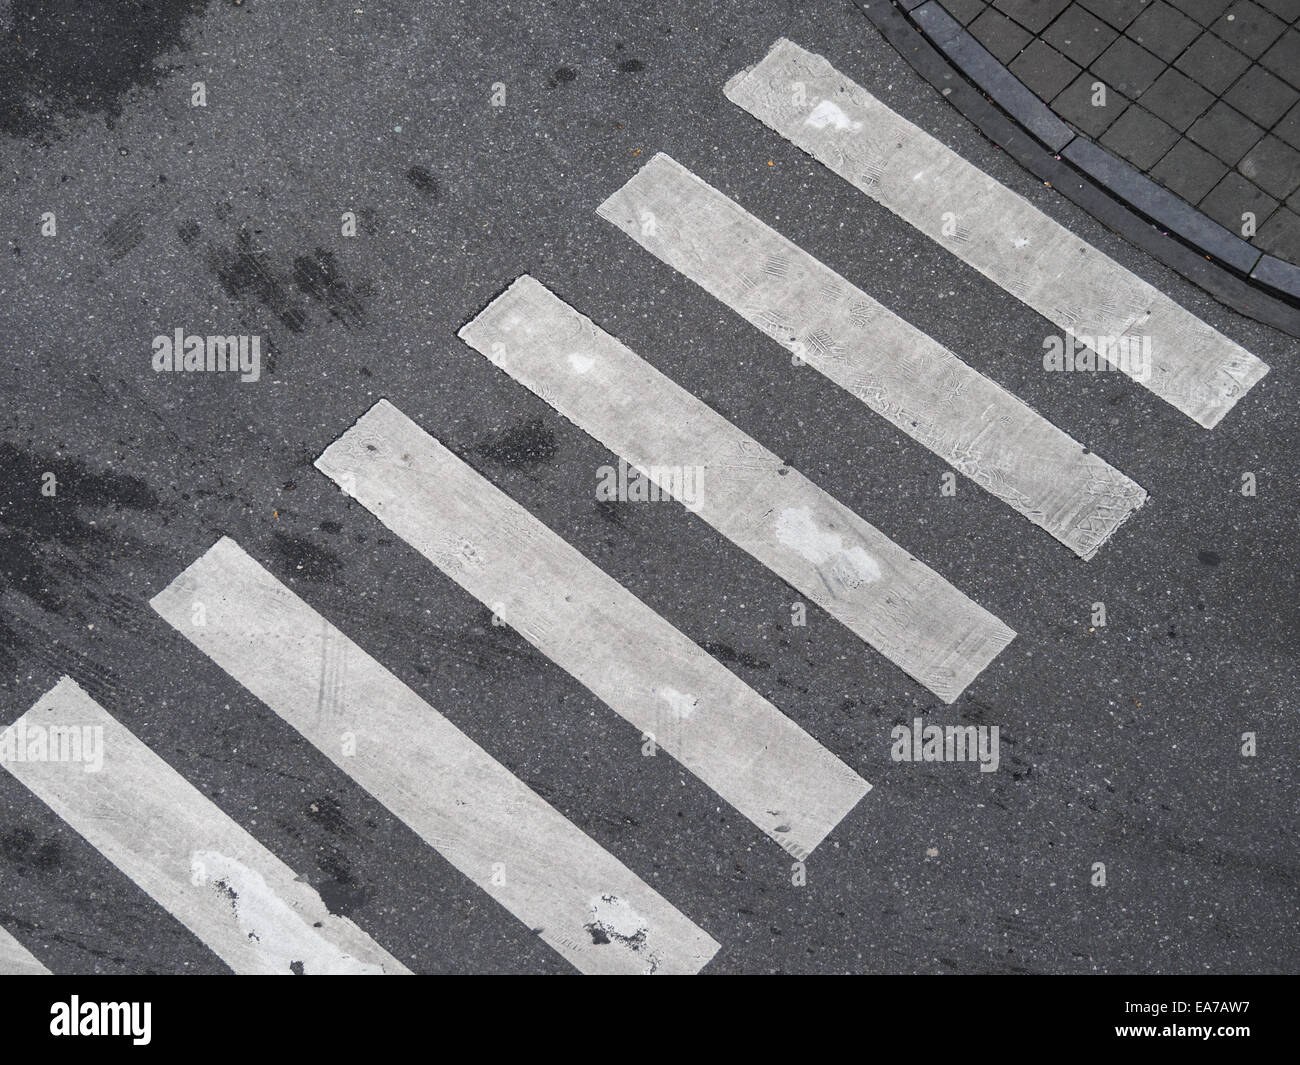 Aerial view of a crosswalk - Stock Image